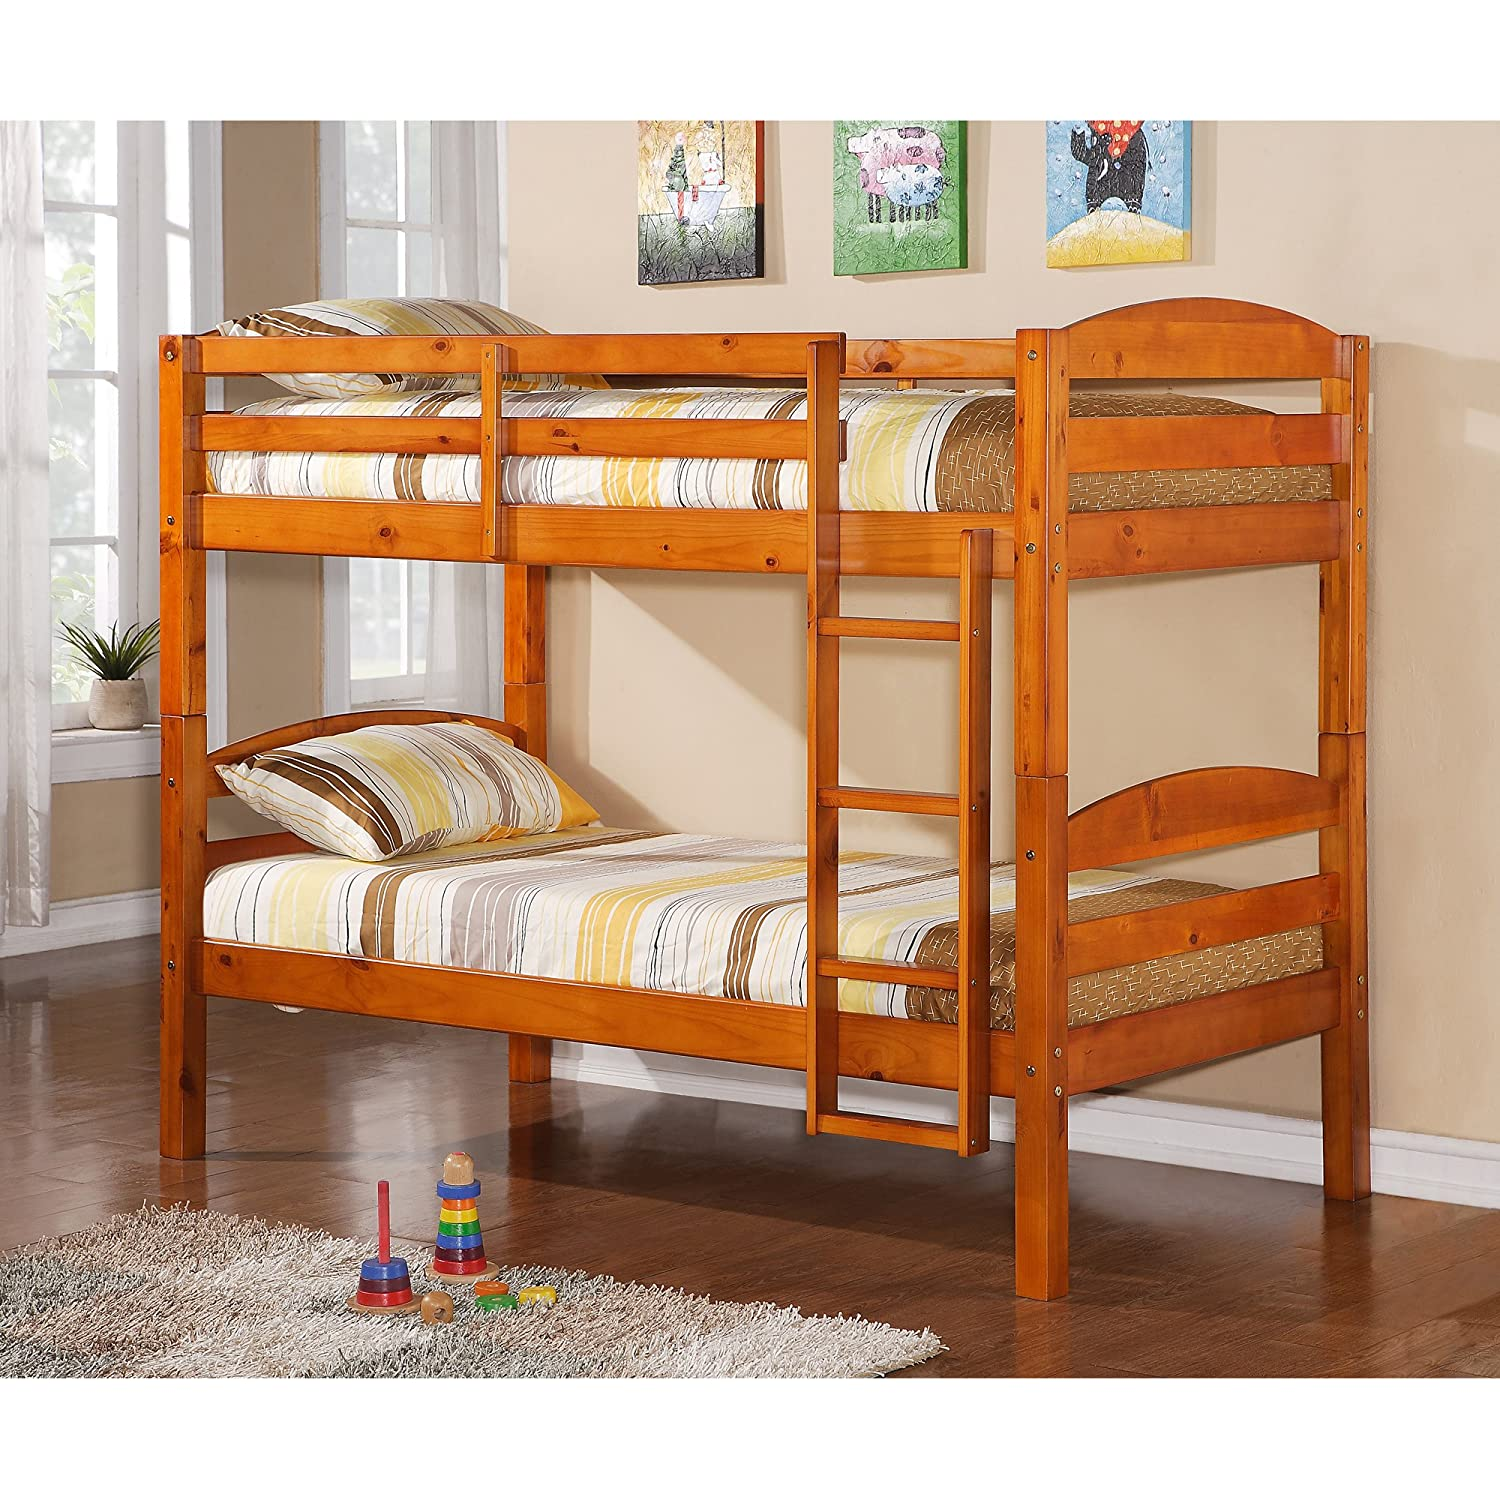 Charmant Amazon.com: WE Furniture Twin Over Twin Solid Wood Bunk Bed, Honey: Kitchen  U0026 Dining